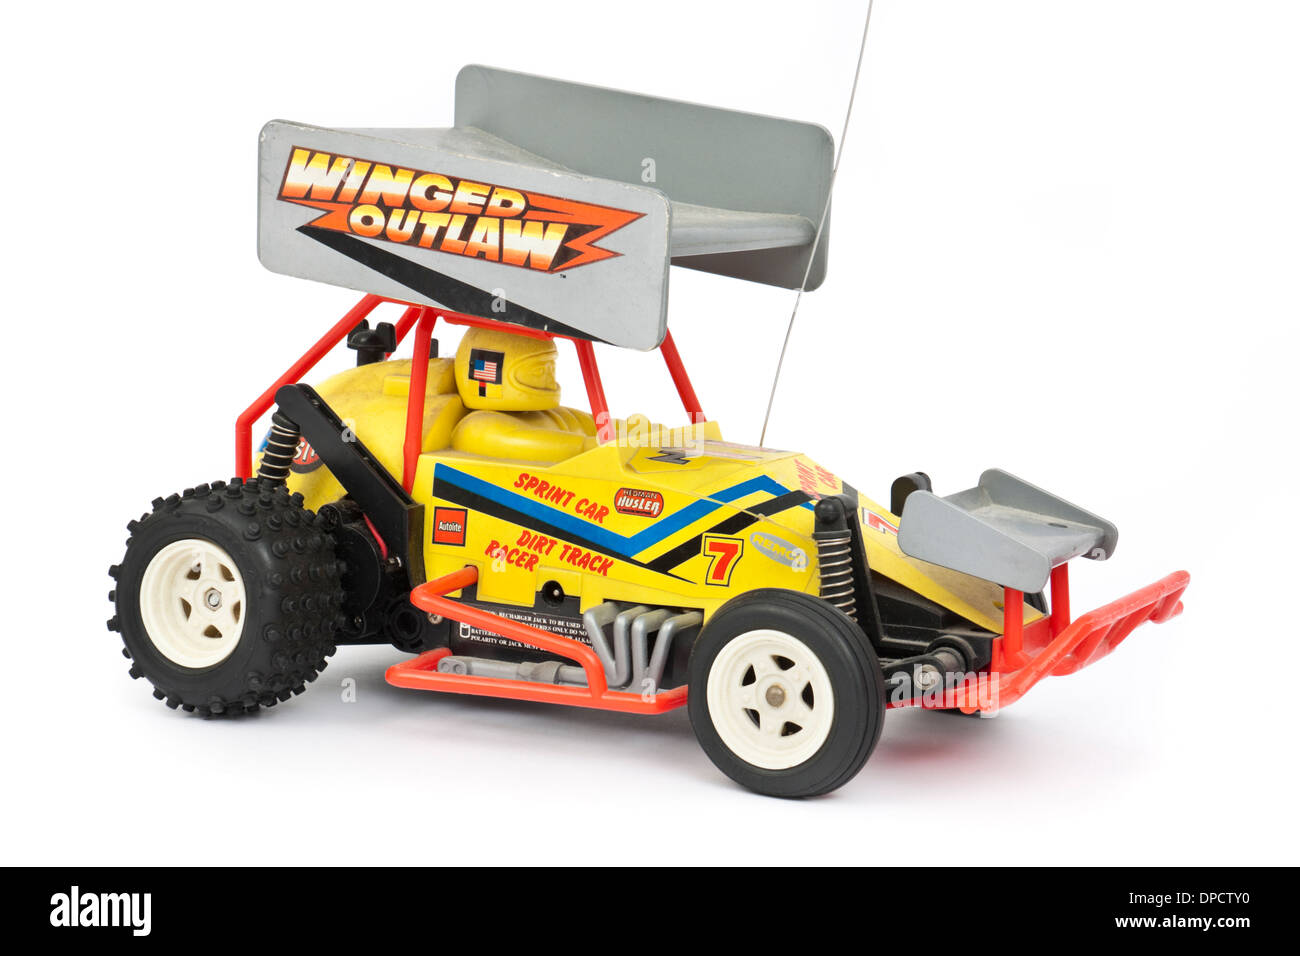 Vintage 1980's Winged Outlaw radio-controlled sprint car by Remco (Azrak-Hamway International Inc) - Stock Image